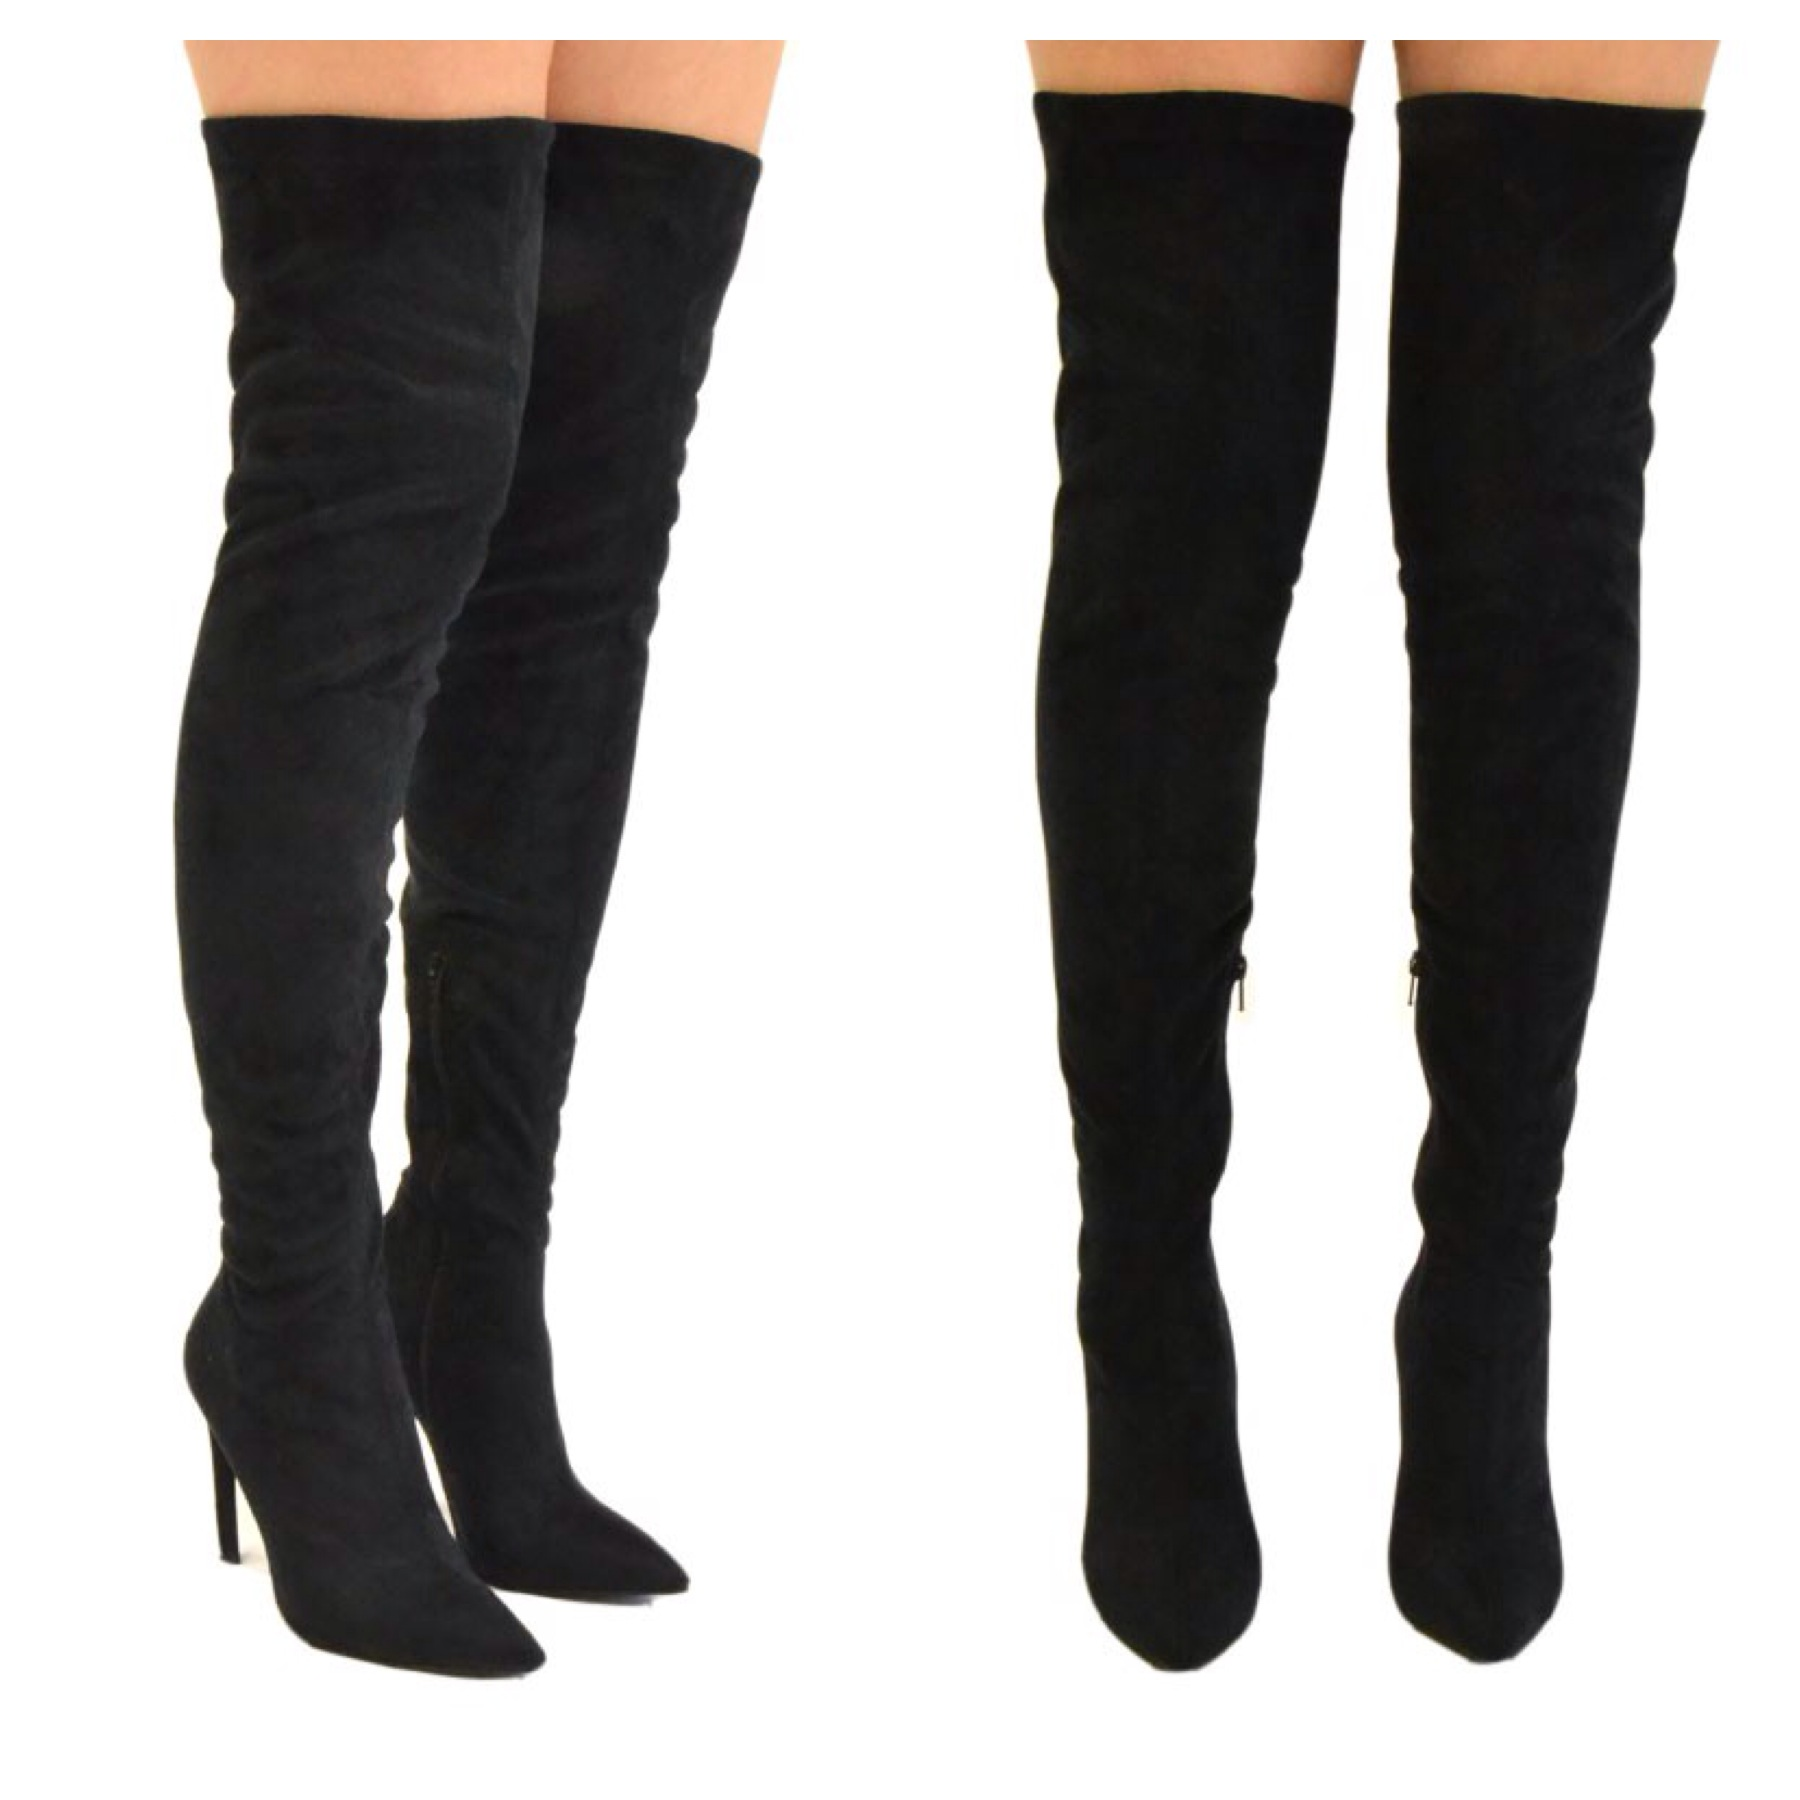 Thigh High Boots Heels eNi9Cuup